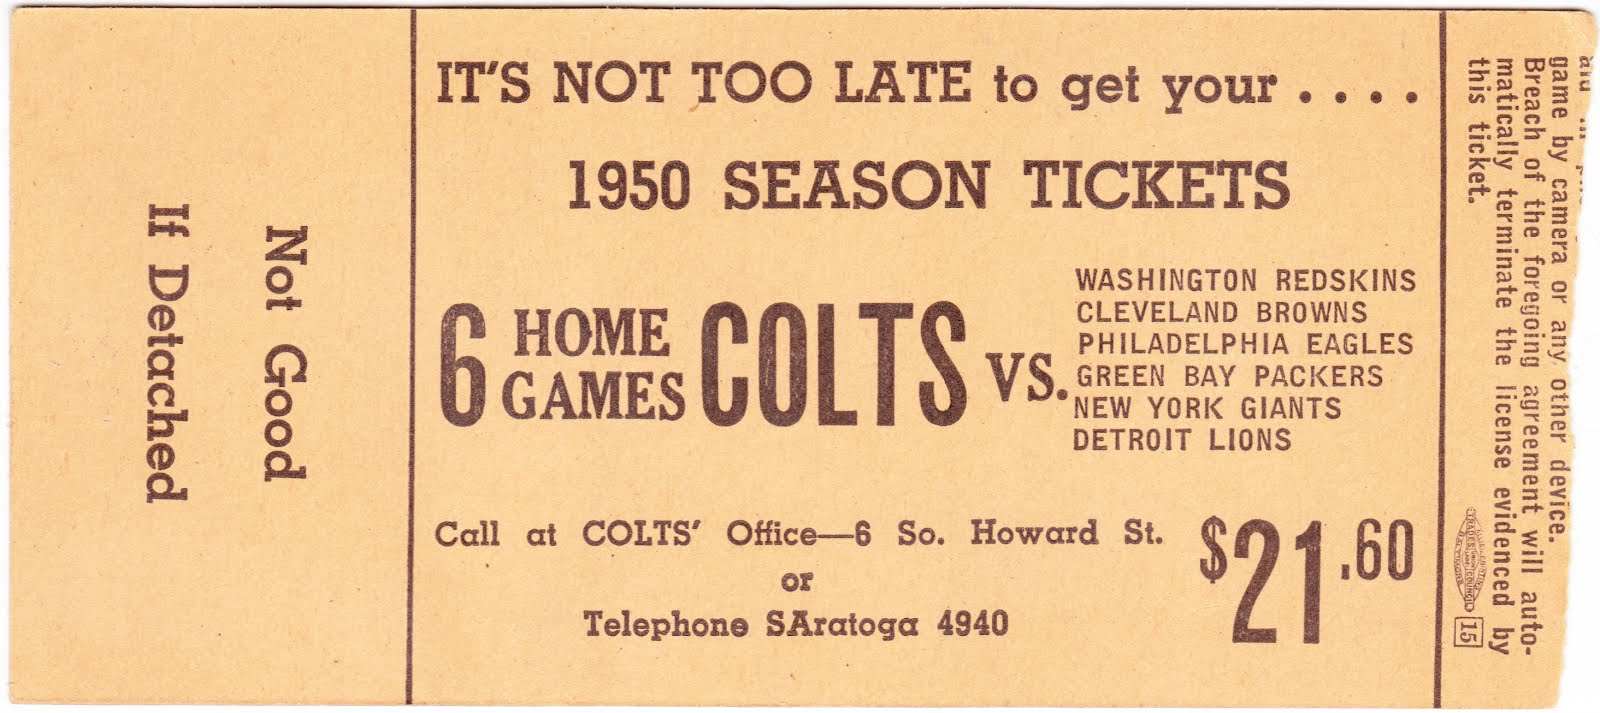 97cc9d45 Papergreat: 1950 ticket stub for Colts-Steelers preseason NFL game